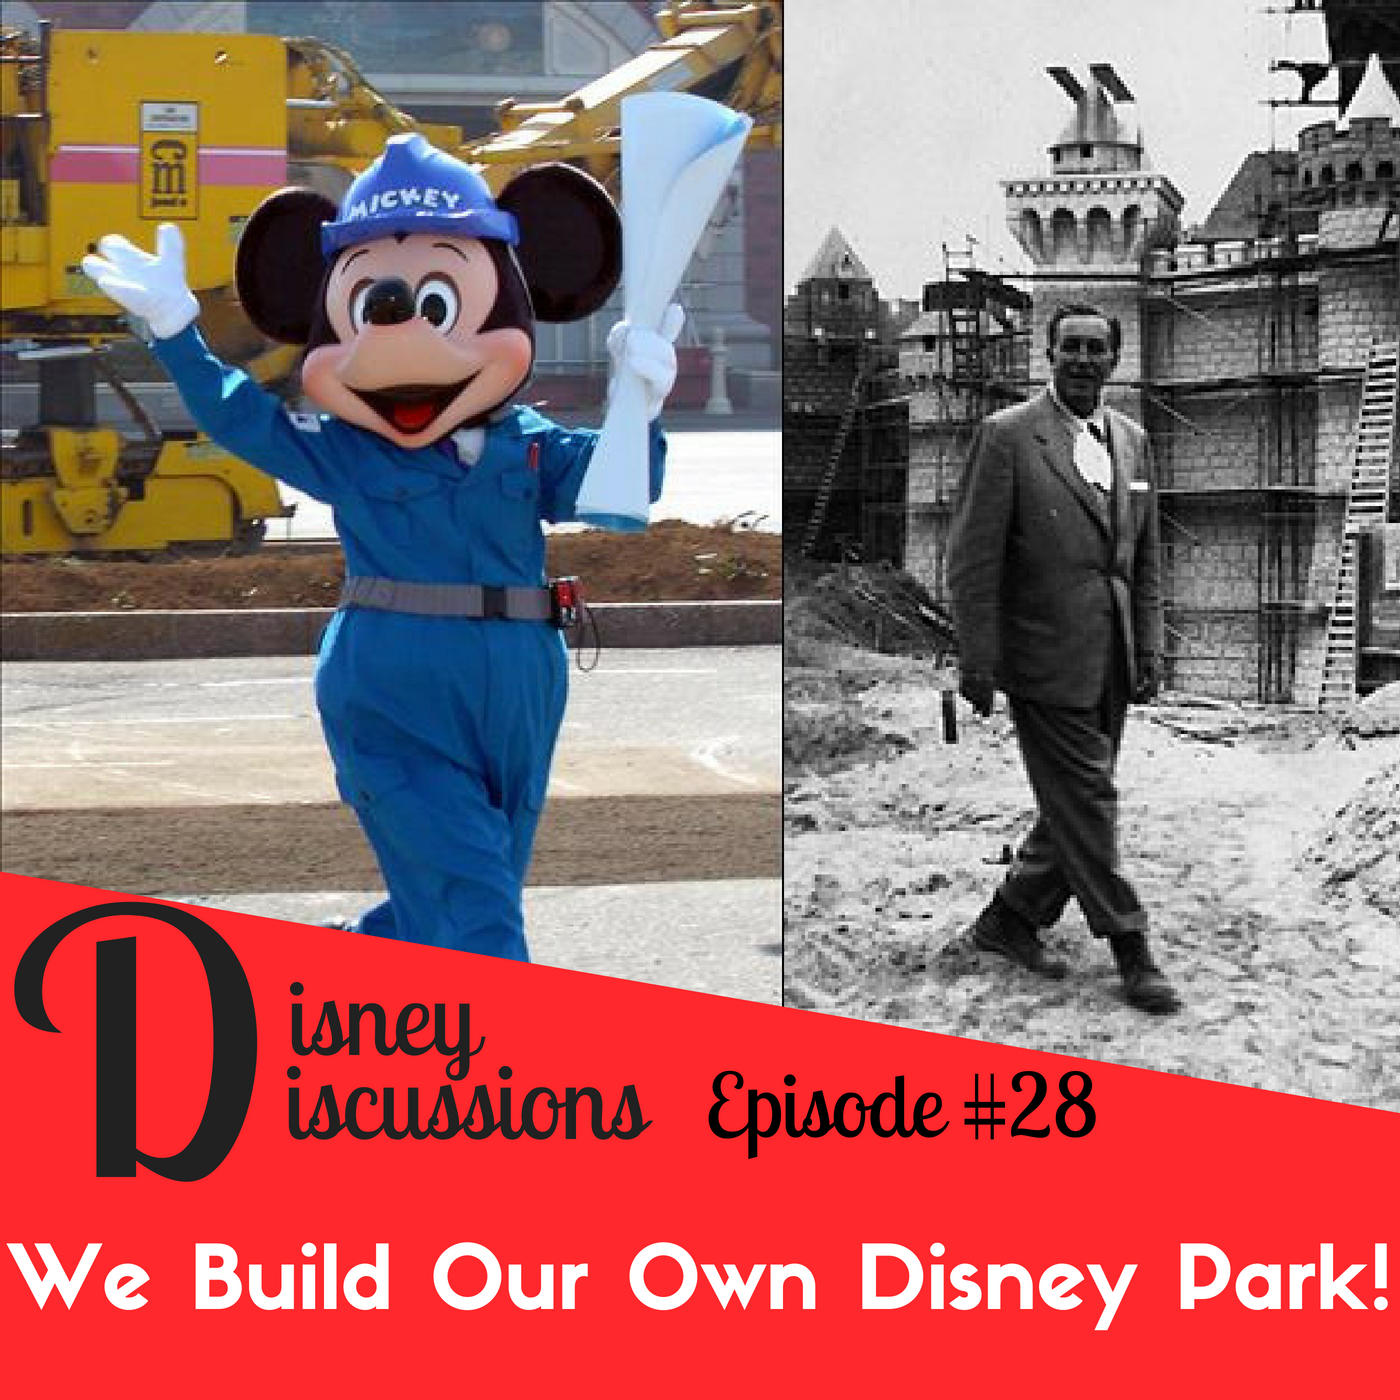 Build Our Own Disney Park, Star Wars Galaxy's Edge & TV News, Pixar Pier Premiere Special Event and more! - Disney Discussions